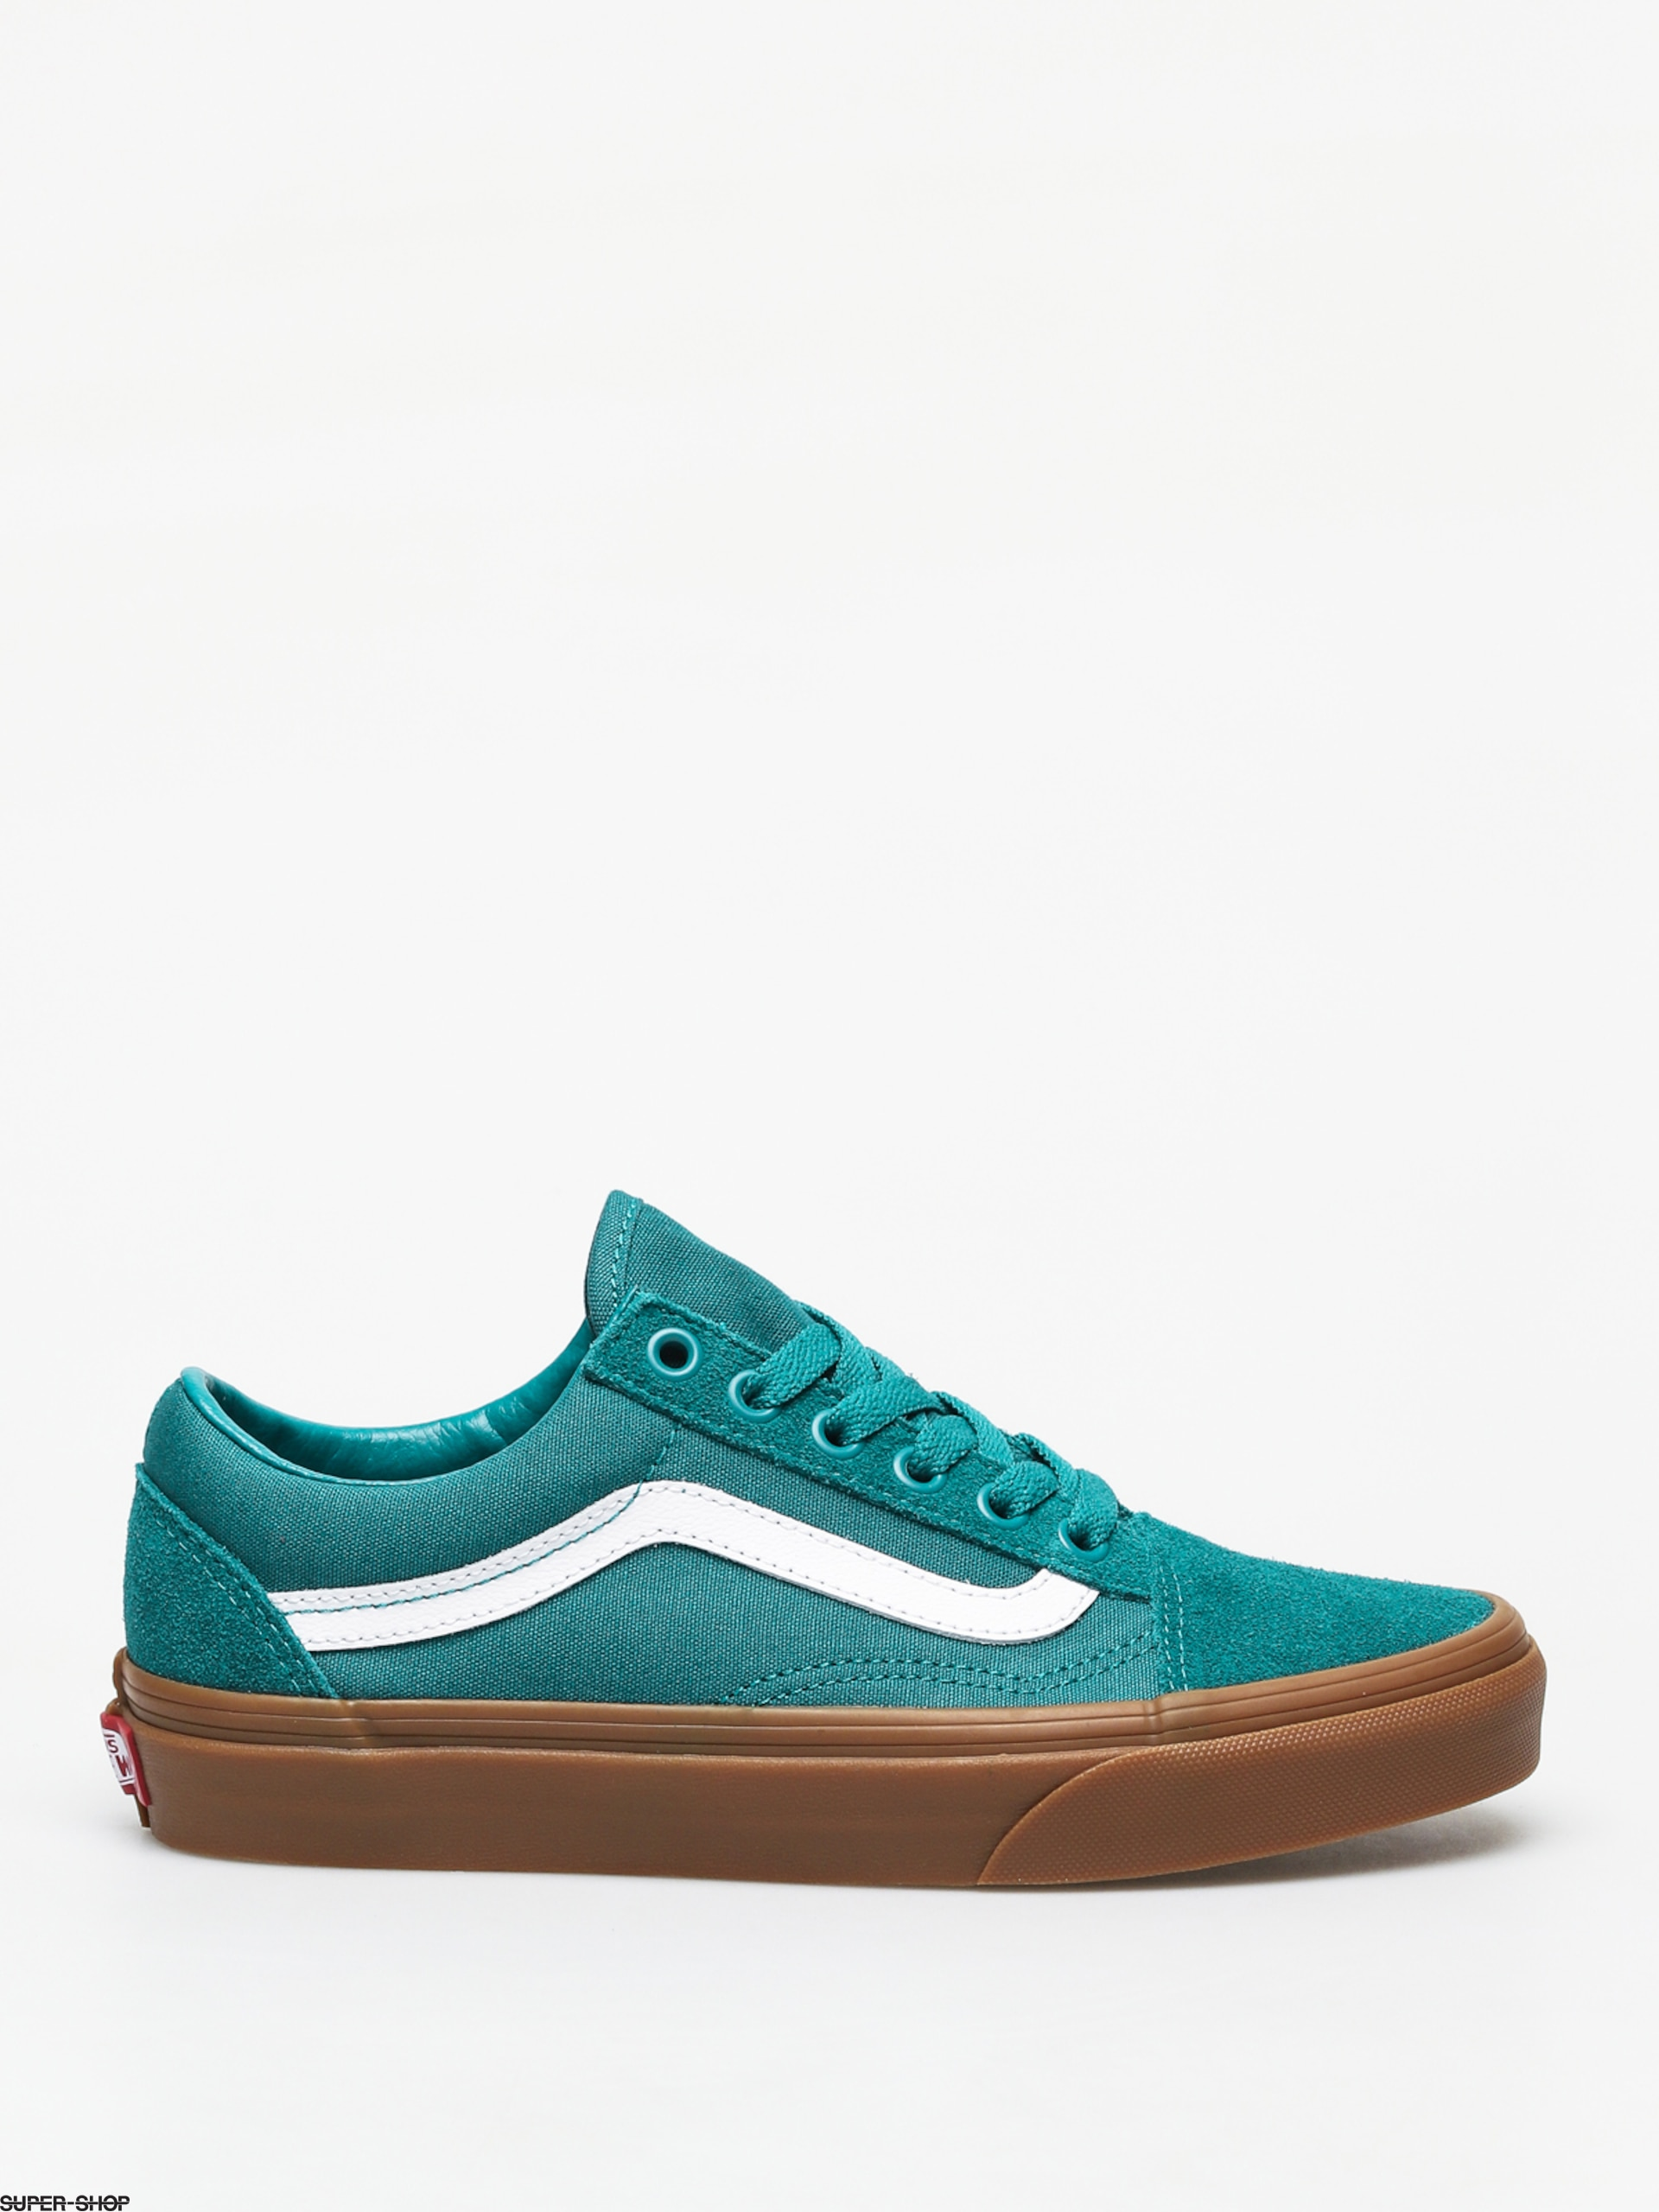 fbd890408a1 1012838-w1920-vans-old-skool-shoes-quetzal-green.jpg